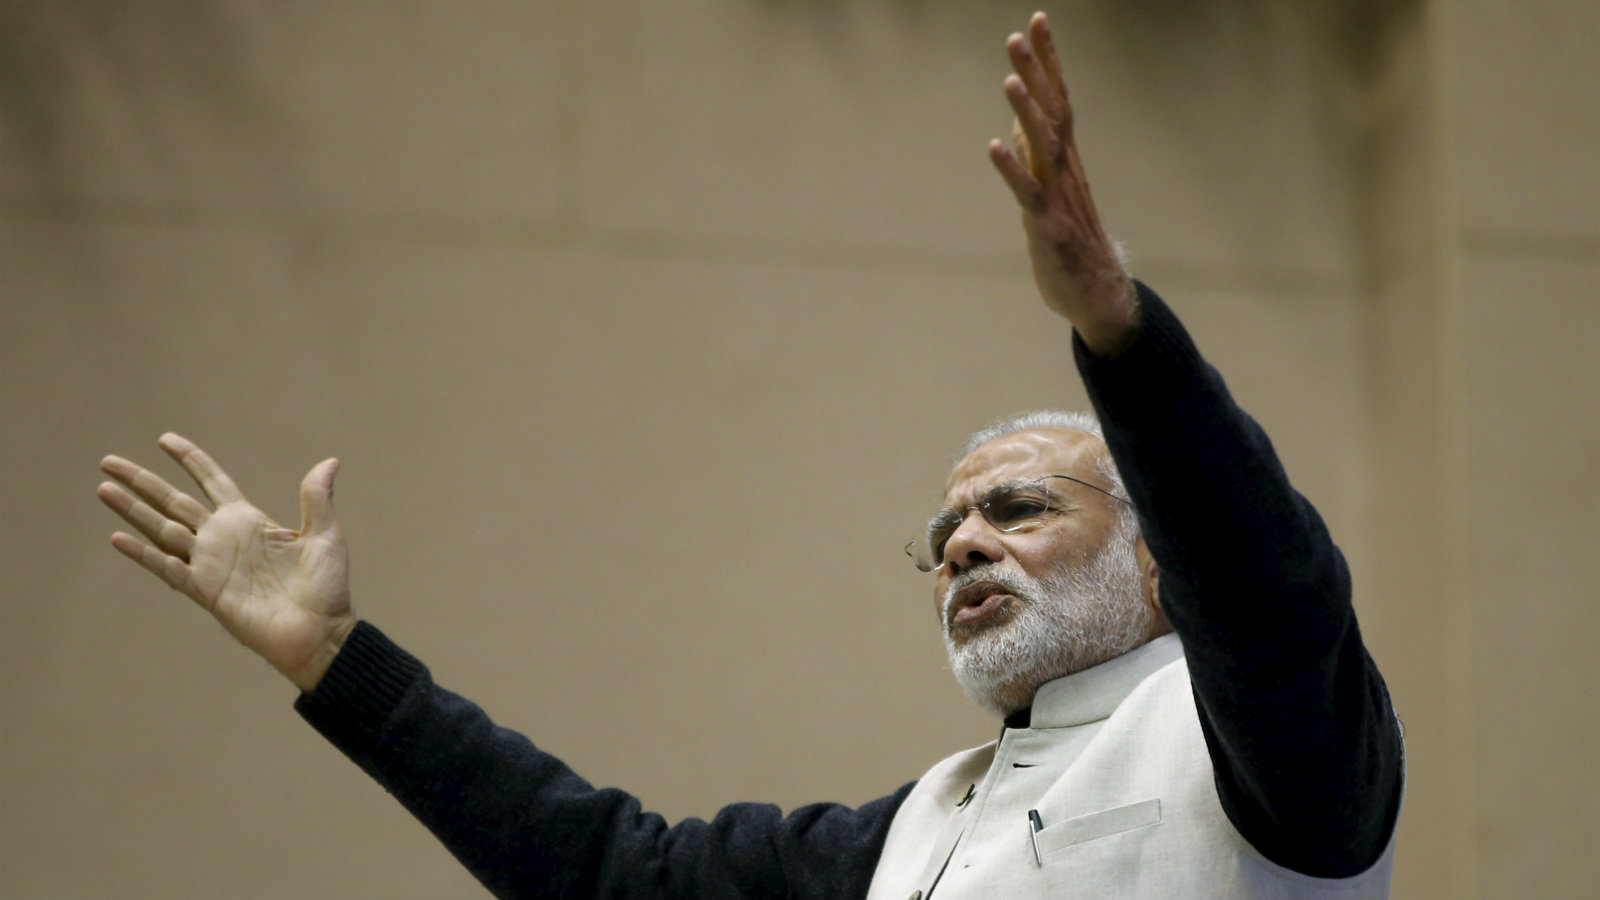 India's Prime Minister Narendra Modi gestures as he addresses a gathering during a conference of start-up businesses in New Delhi, India, January 16, 2016. Indian Prime Minister Modi launched a number of initiatives on Saturday to support the country's start-ups, including a 100 billion rupee ($1.5 billion) fund and a string of tax breaks for both the companies and their investors.